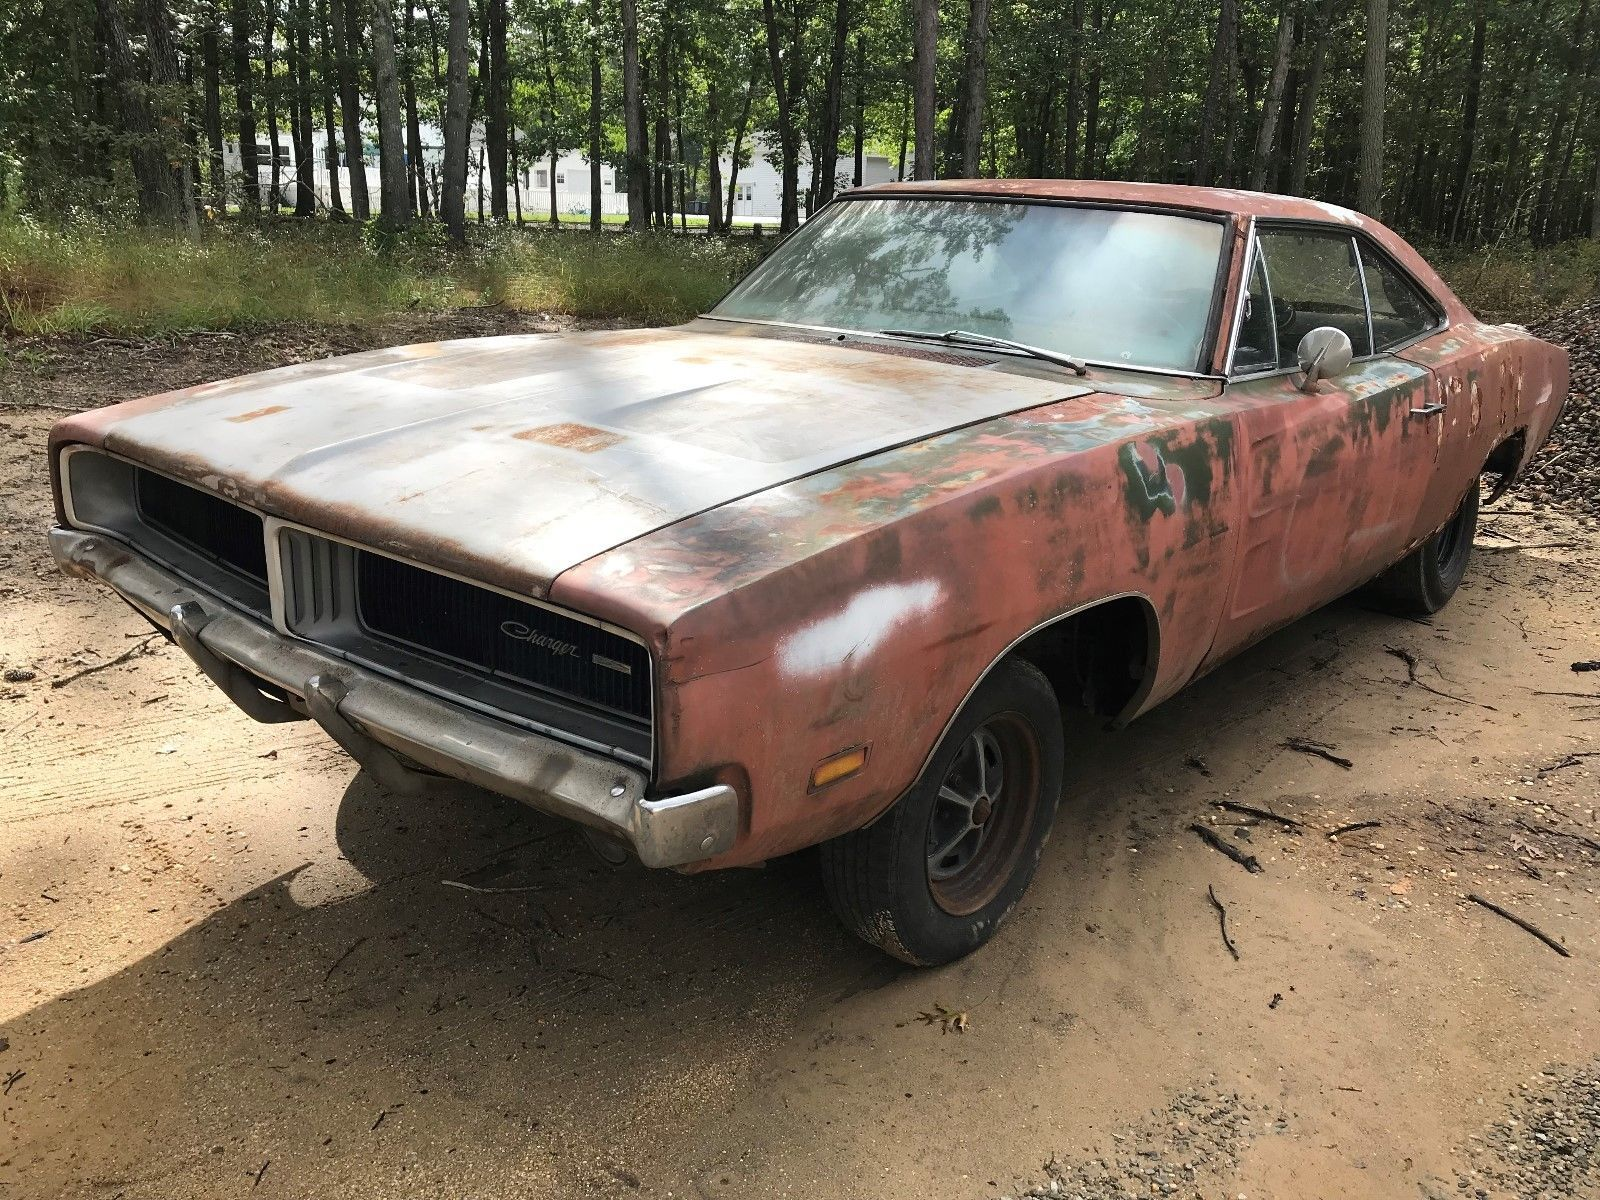 Solid 1969 Dodge Charger Project Project Cars For Sale Pinterest